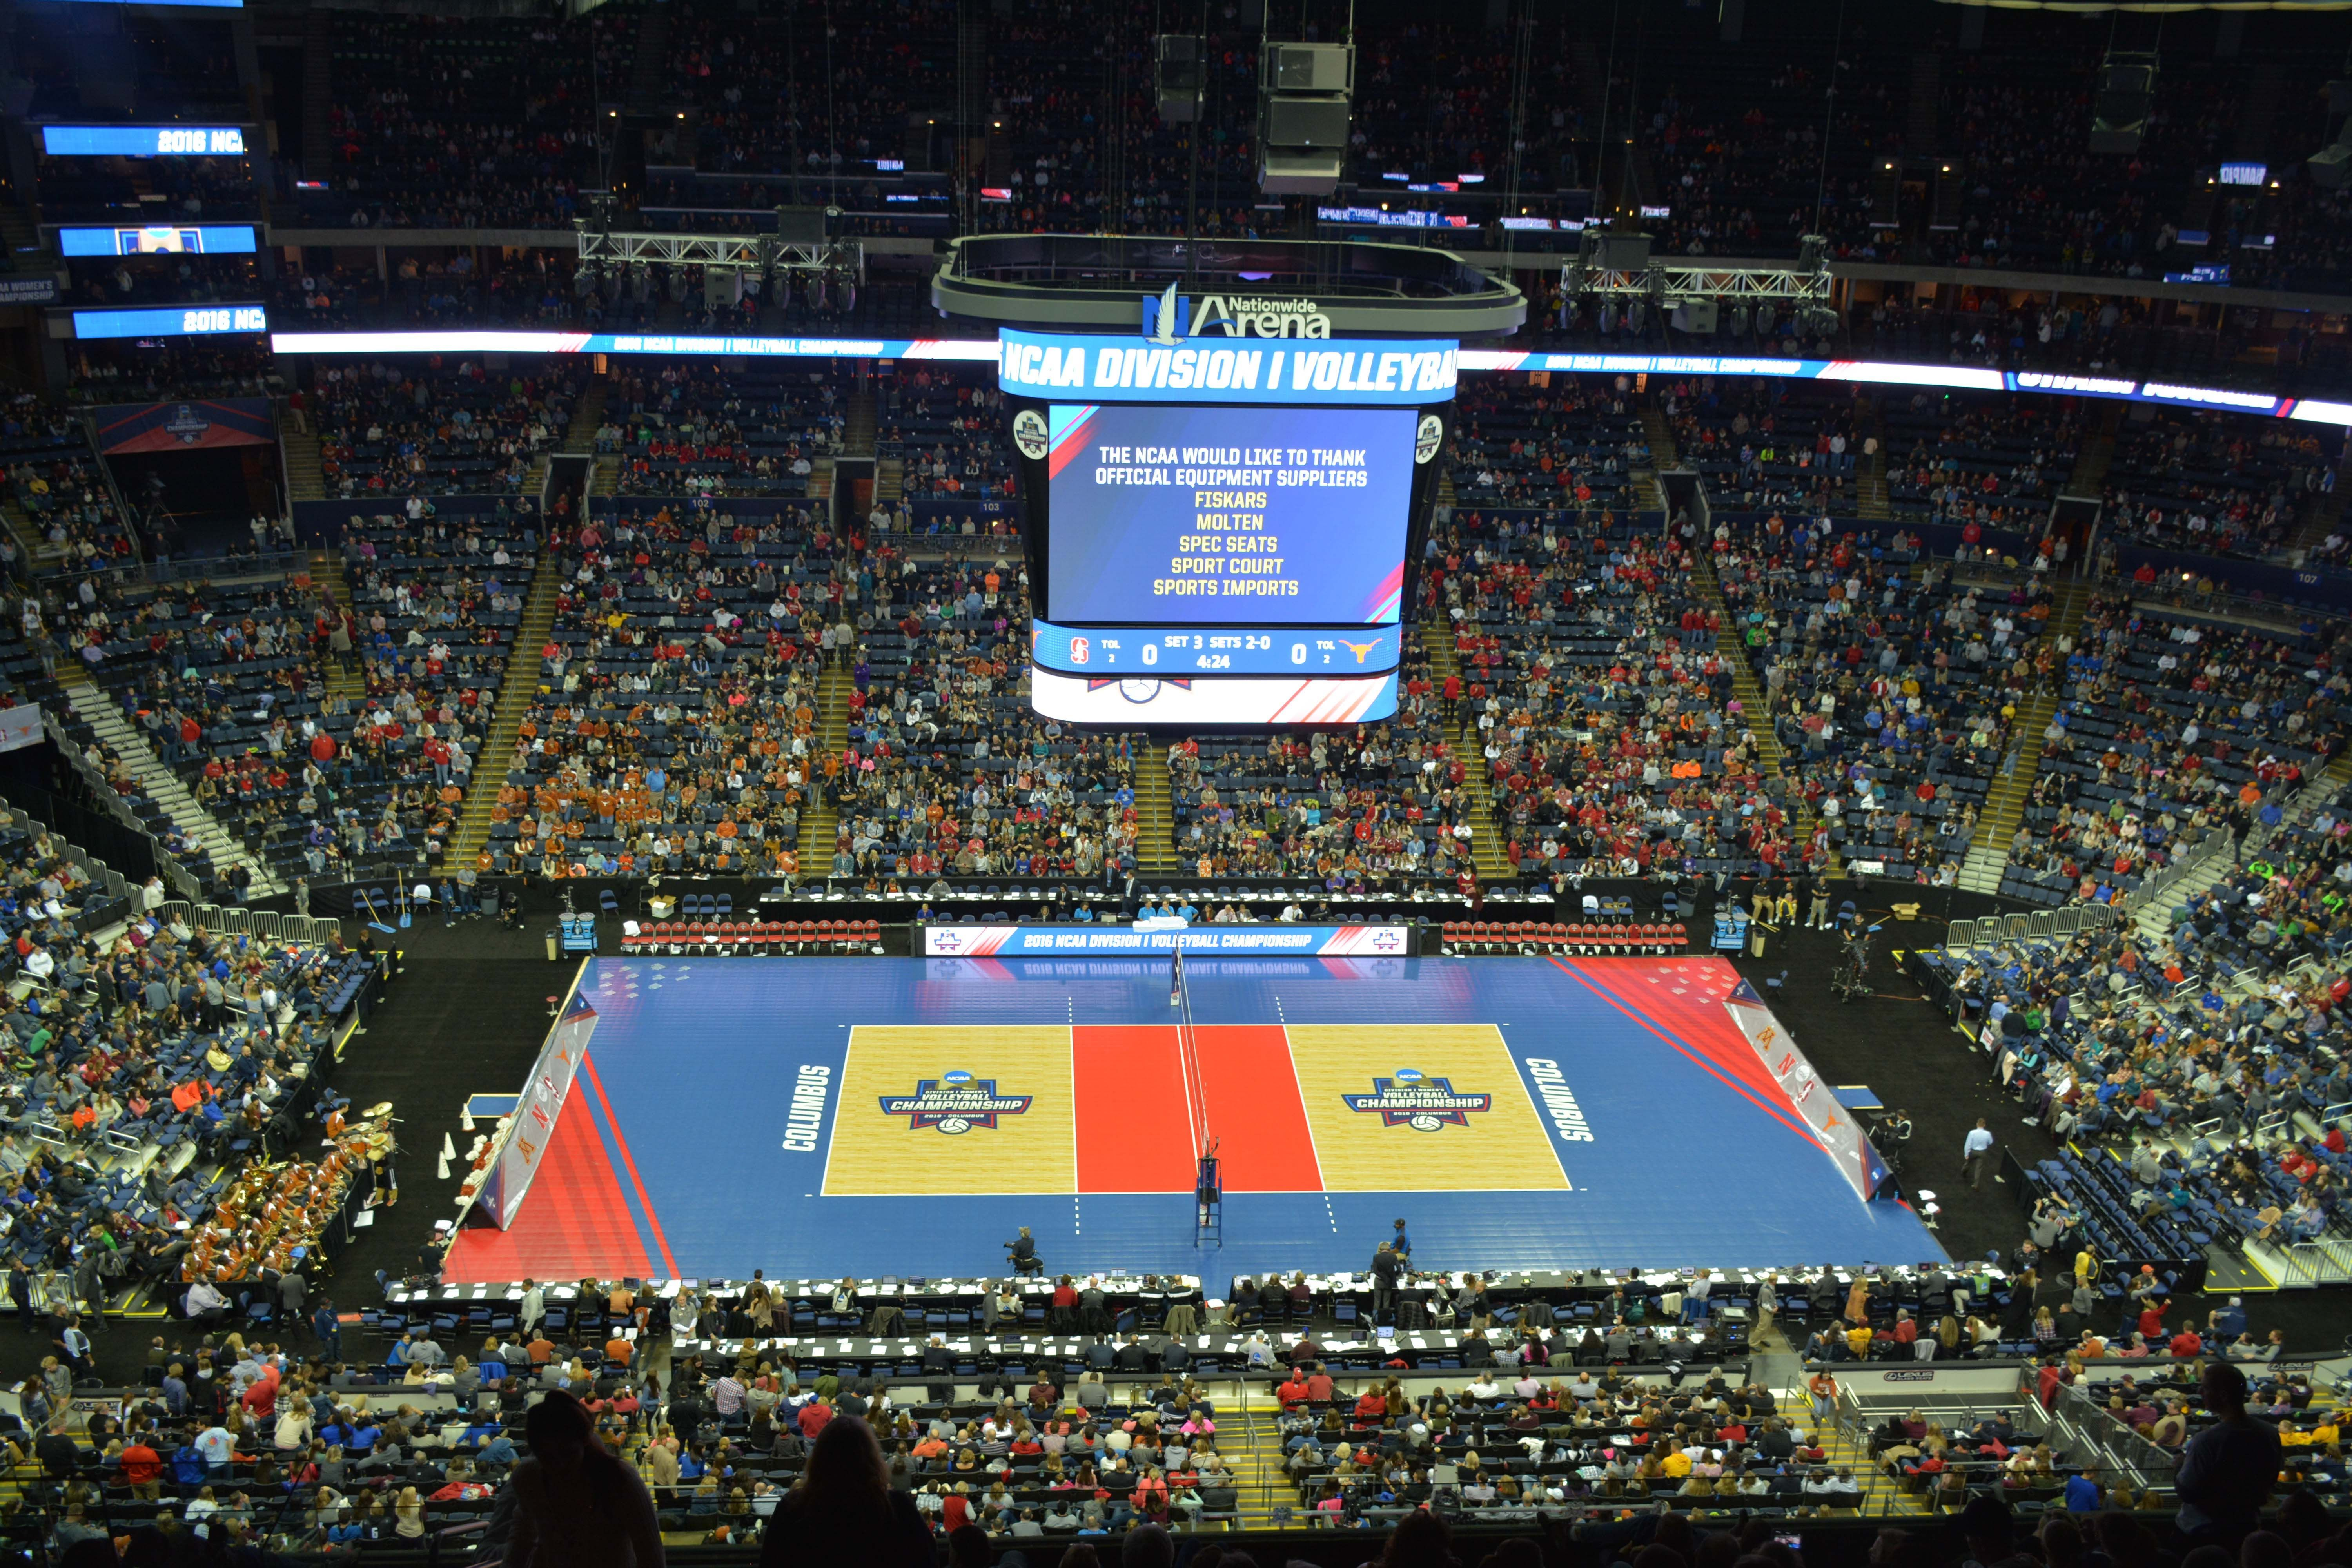 Sport Court Has Been The Official Supplier For The Usa Volleyball National Teams Since 1989 And Has Been The Only Surface Us Sport Court Usa Volleyball Sports